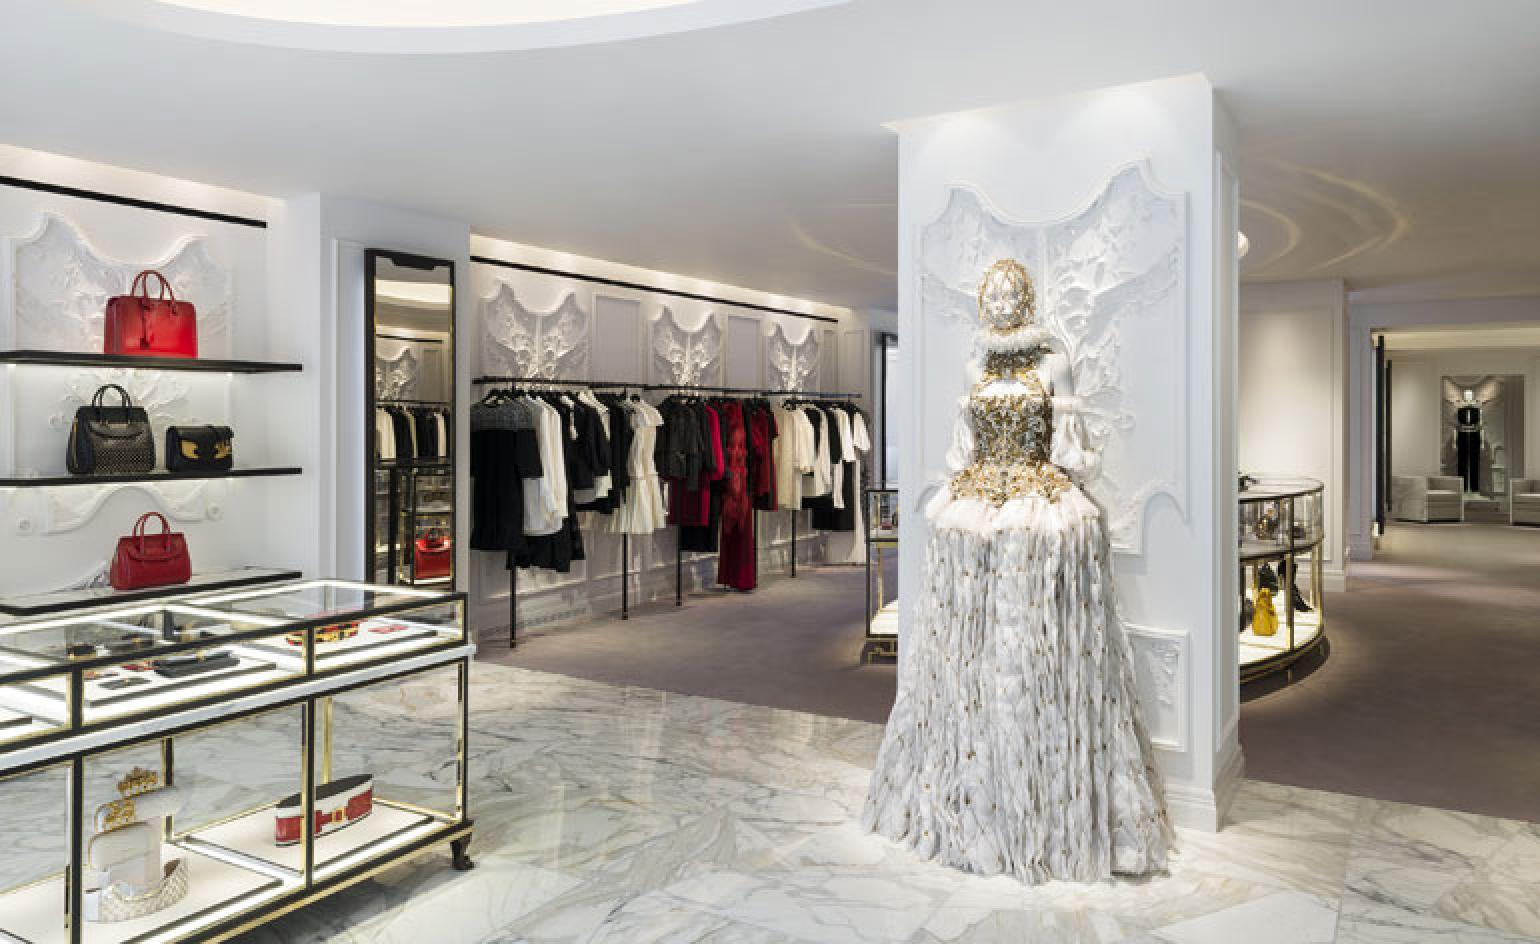 Alexander McQueen's London flagship store reopens after an overhaul by David Collins Studio